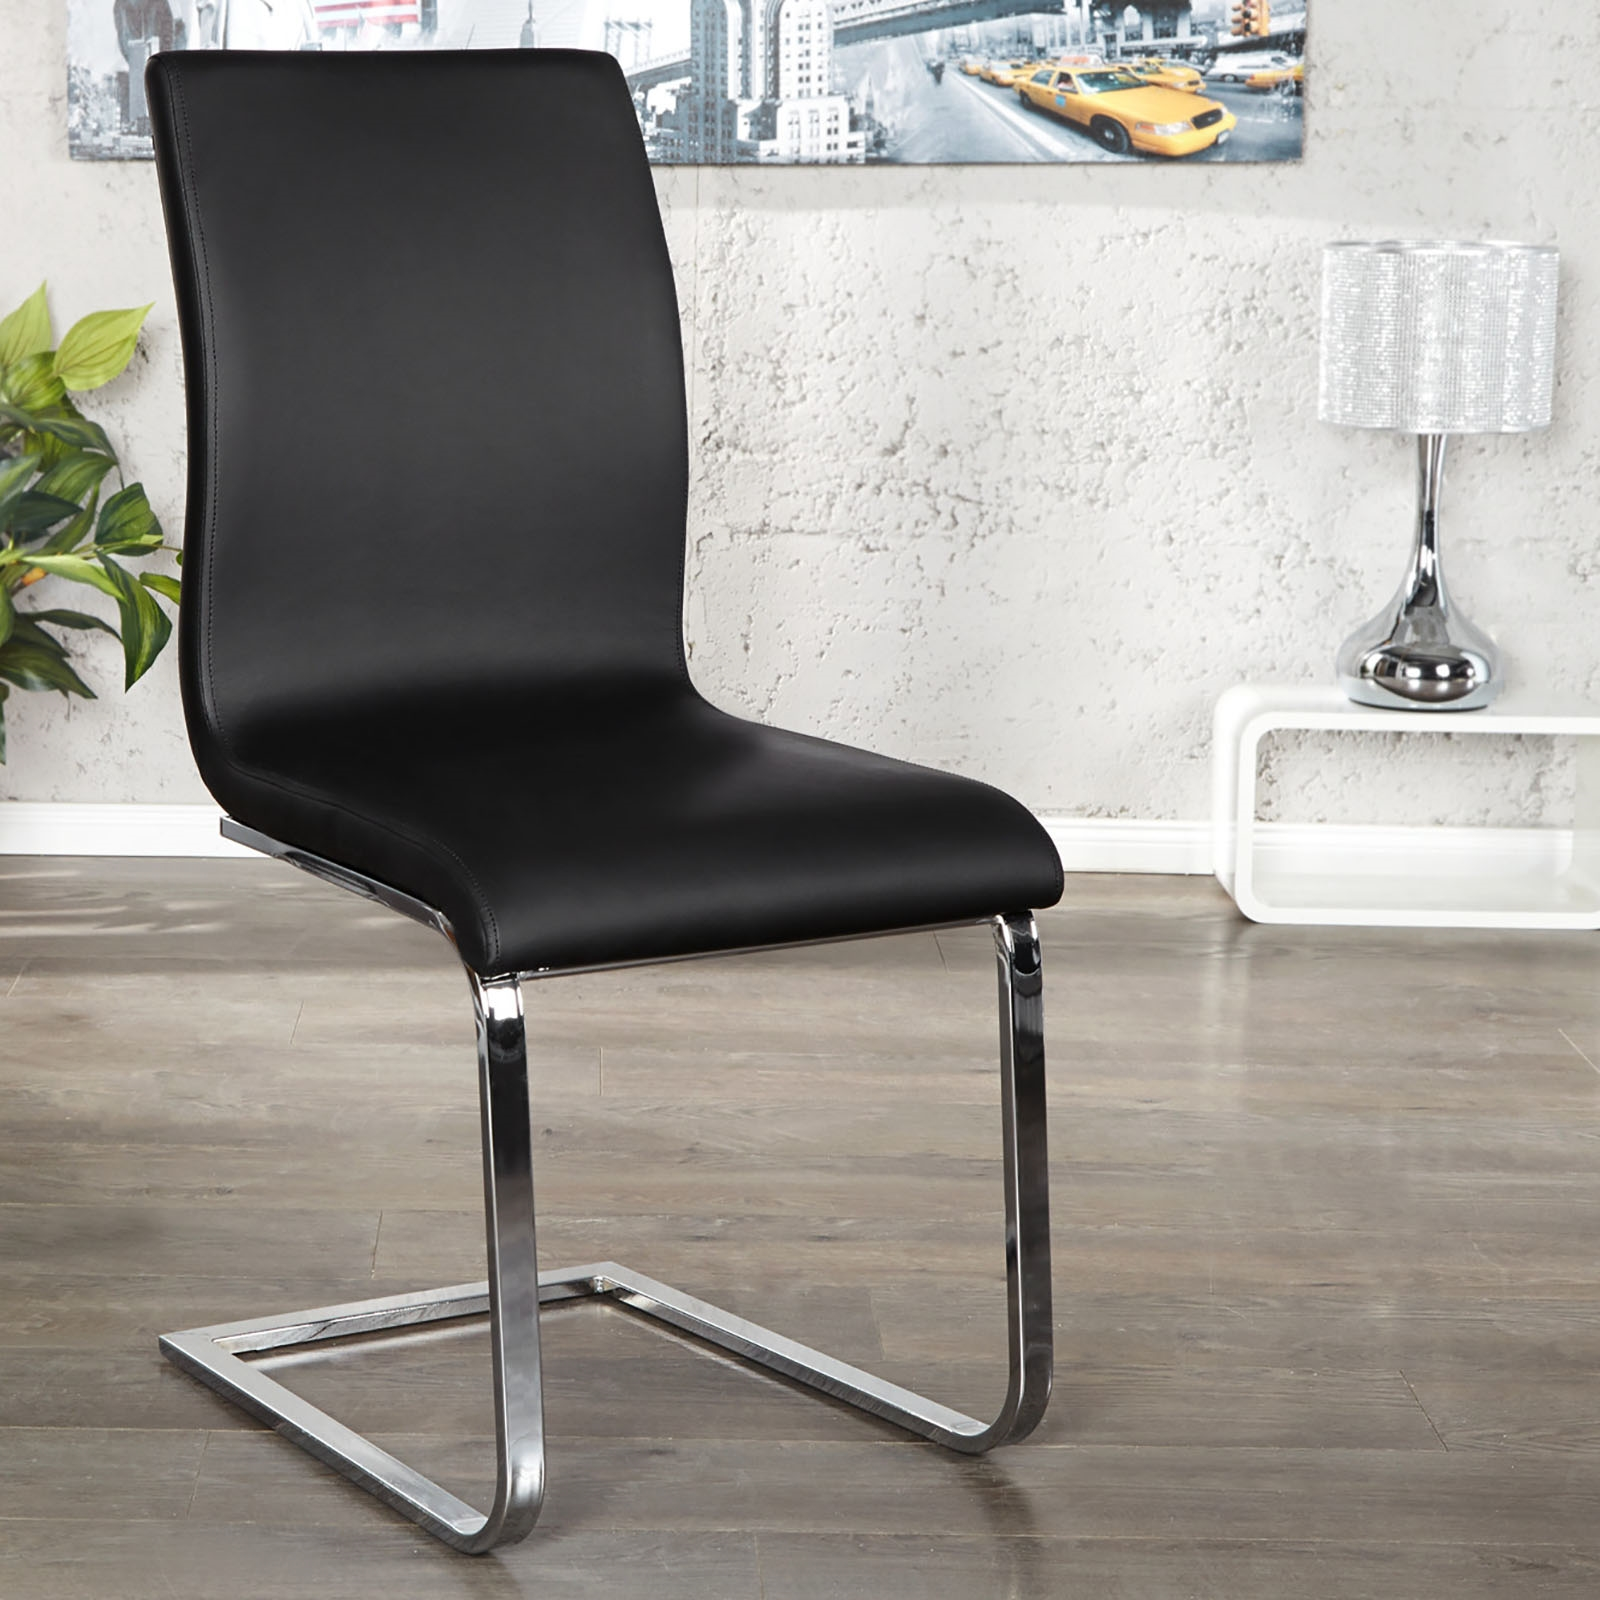 Furniture gt see more elegant cantilever quot linea quot dining chair with l